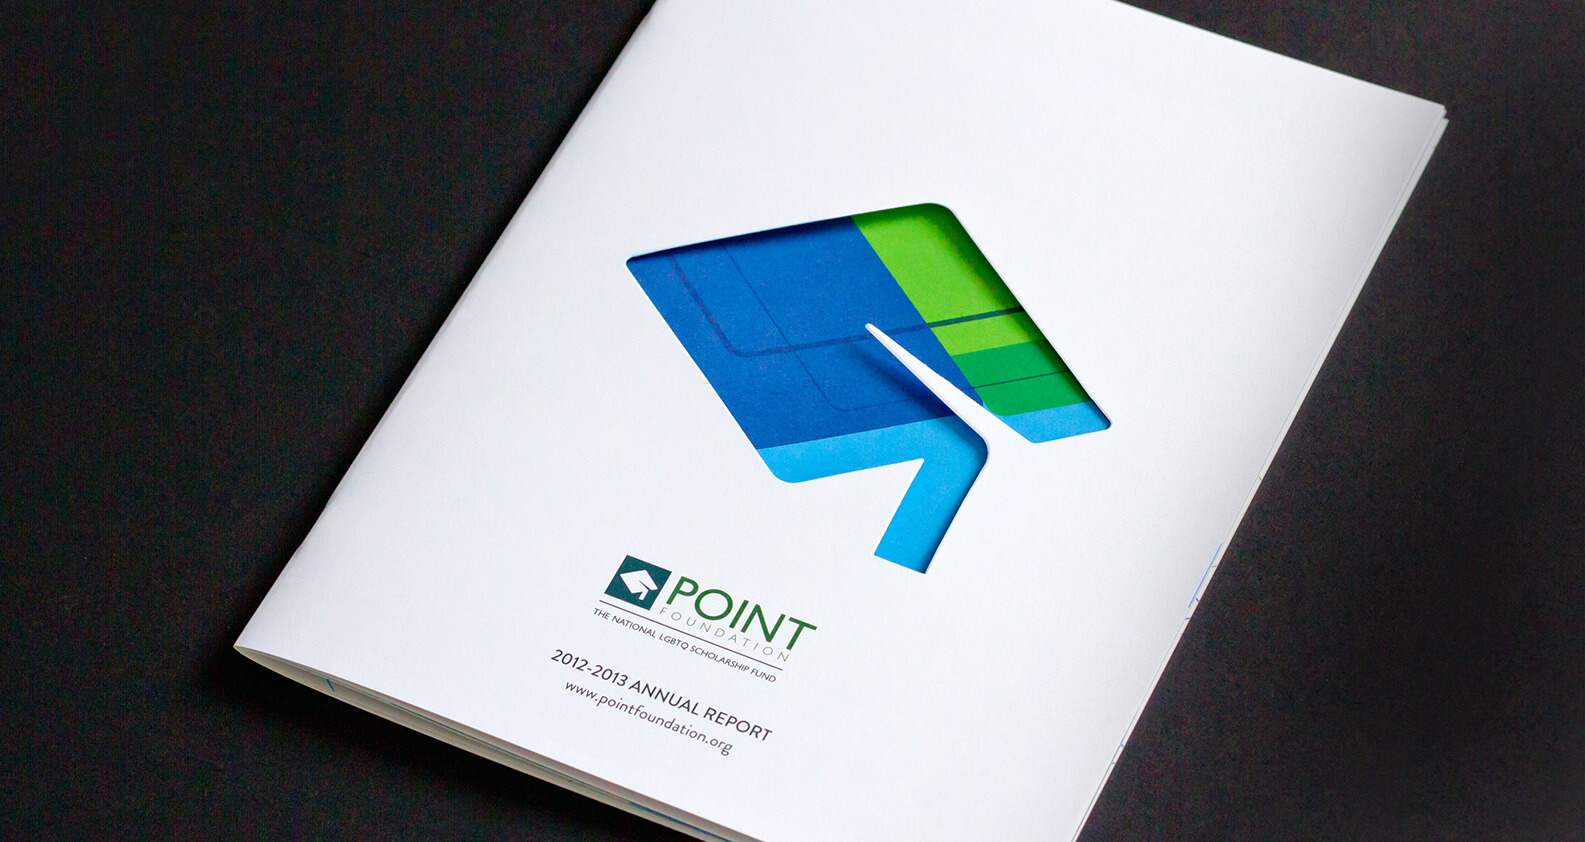 Point Foundation annual report layout design by Jacober Creative